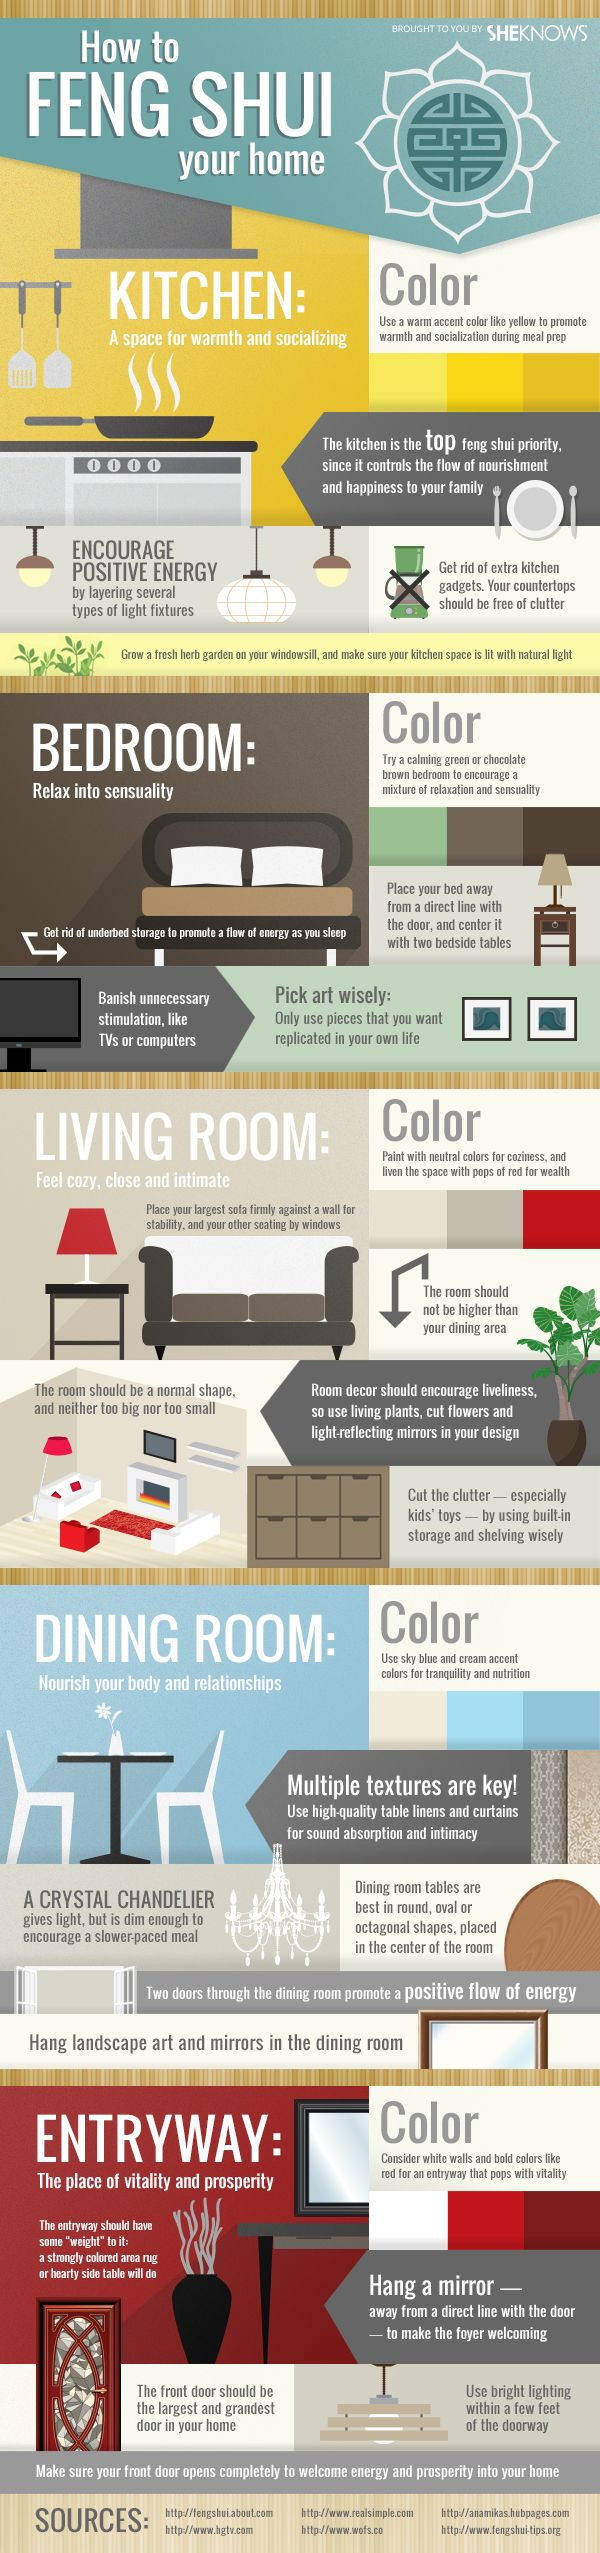 Feng Shui Bathroom Colors Decorating Unique How to Feng Shui Your Home A Room by Room Guide